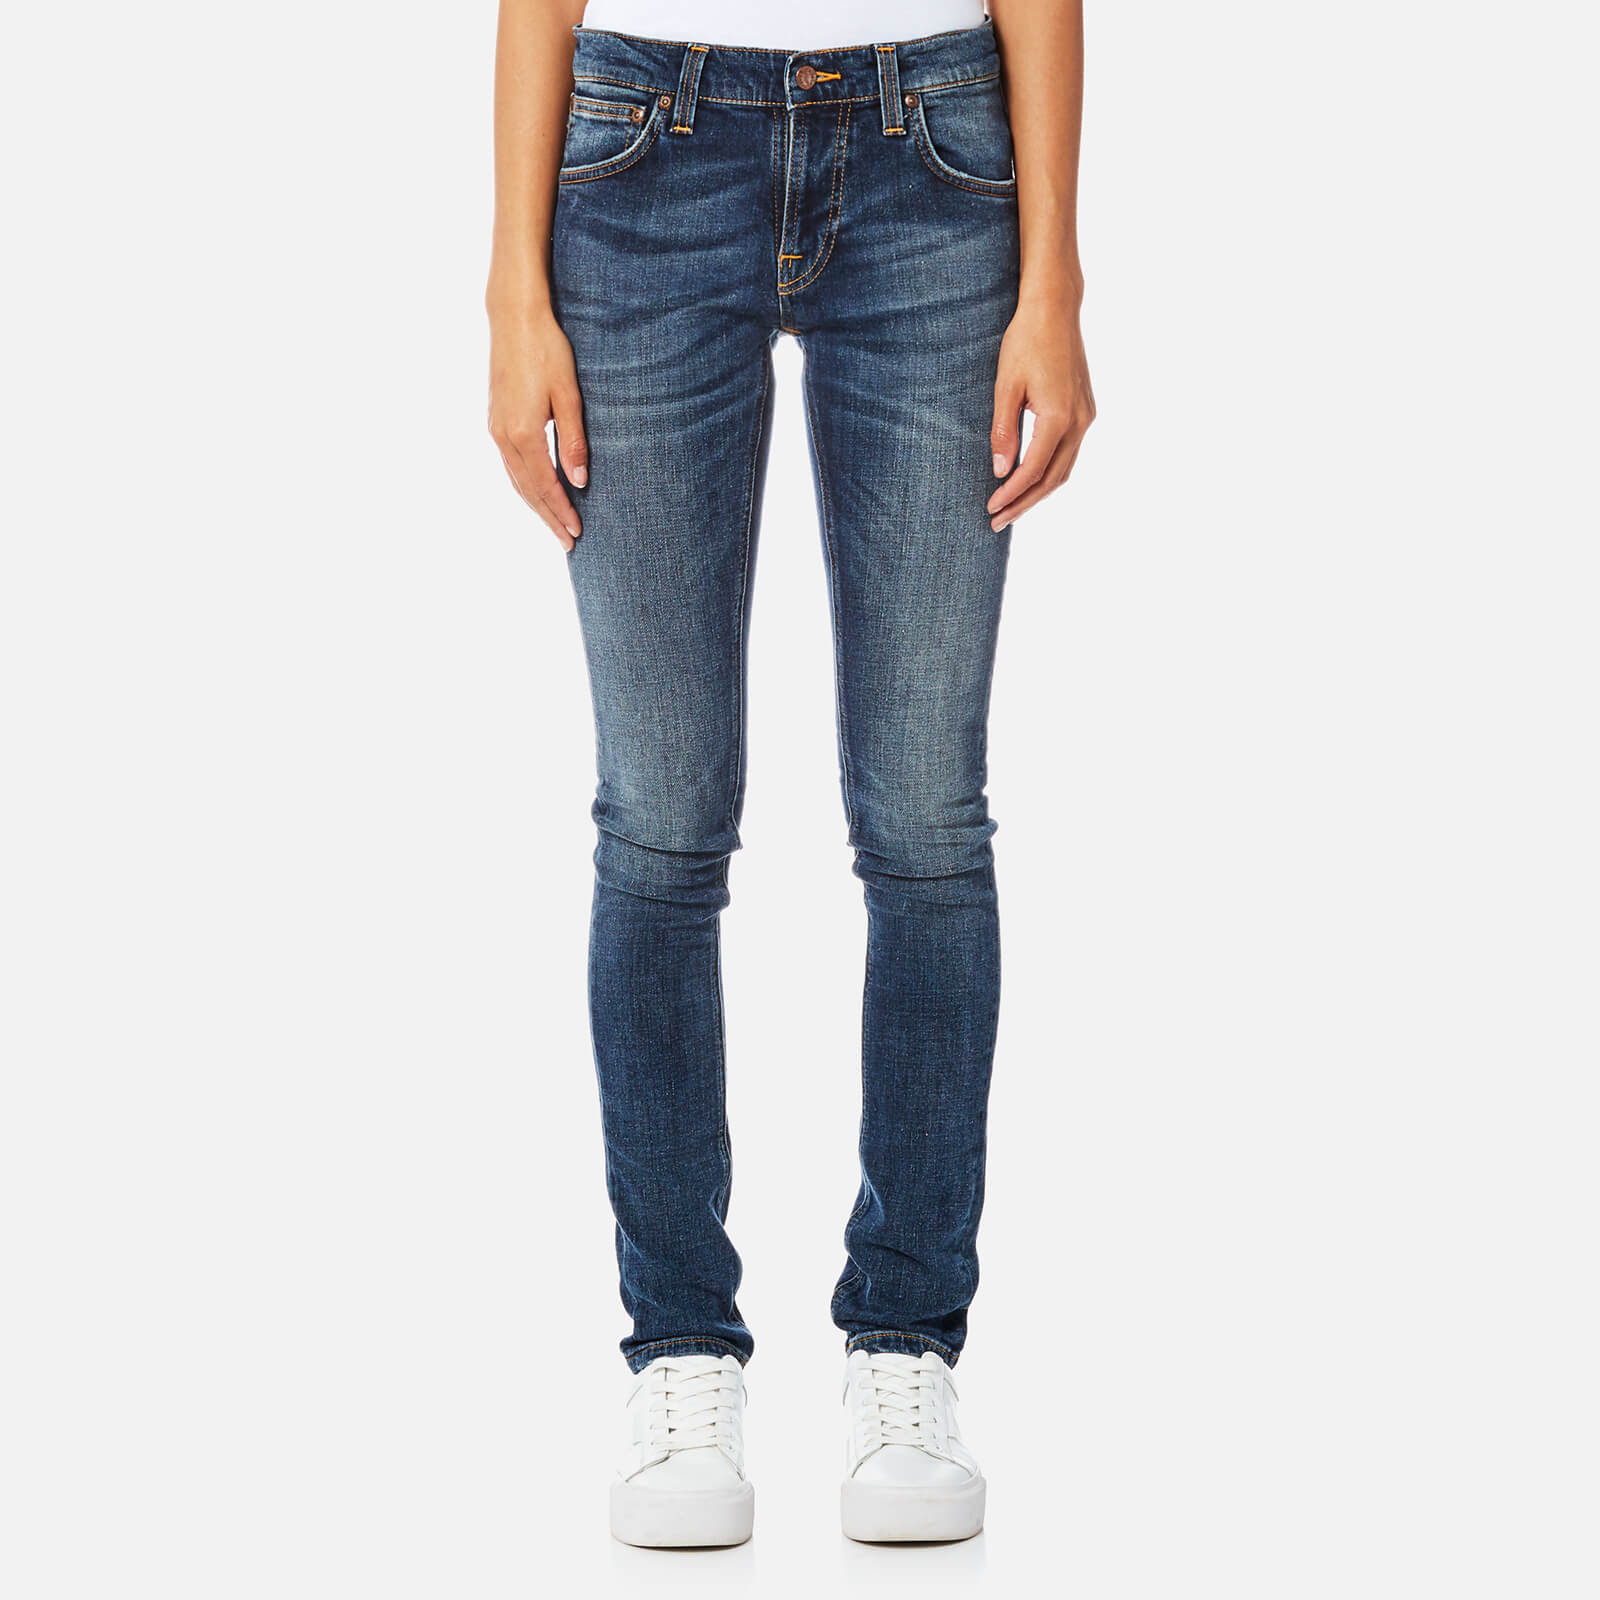 afbae8e3e2cf Nudie Jeans Women s Tight Terry Jeans - Double Indigo - Free UK Delivery  over £50